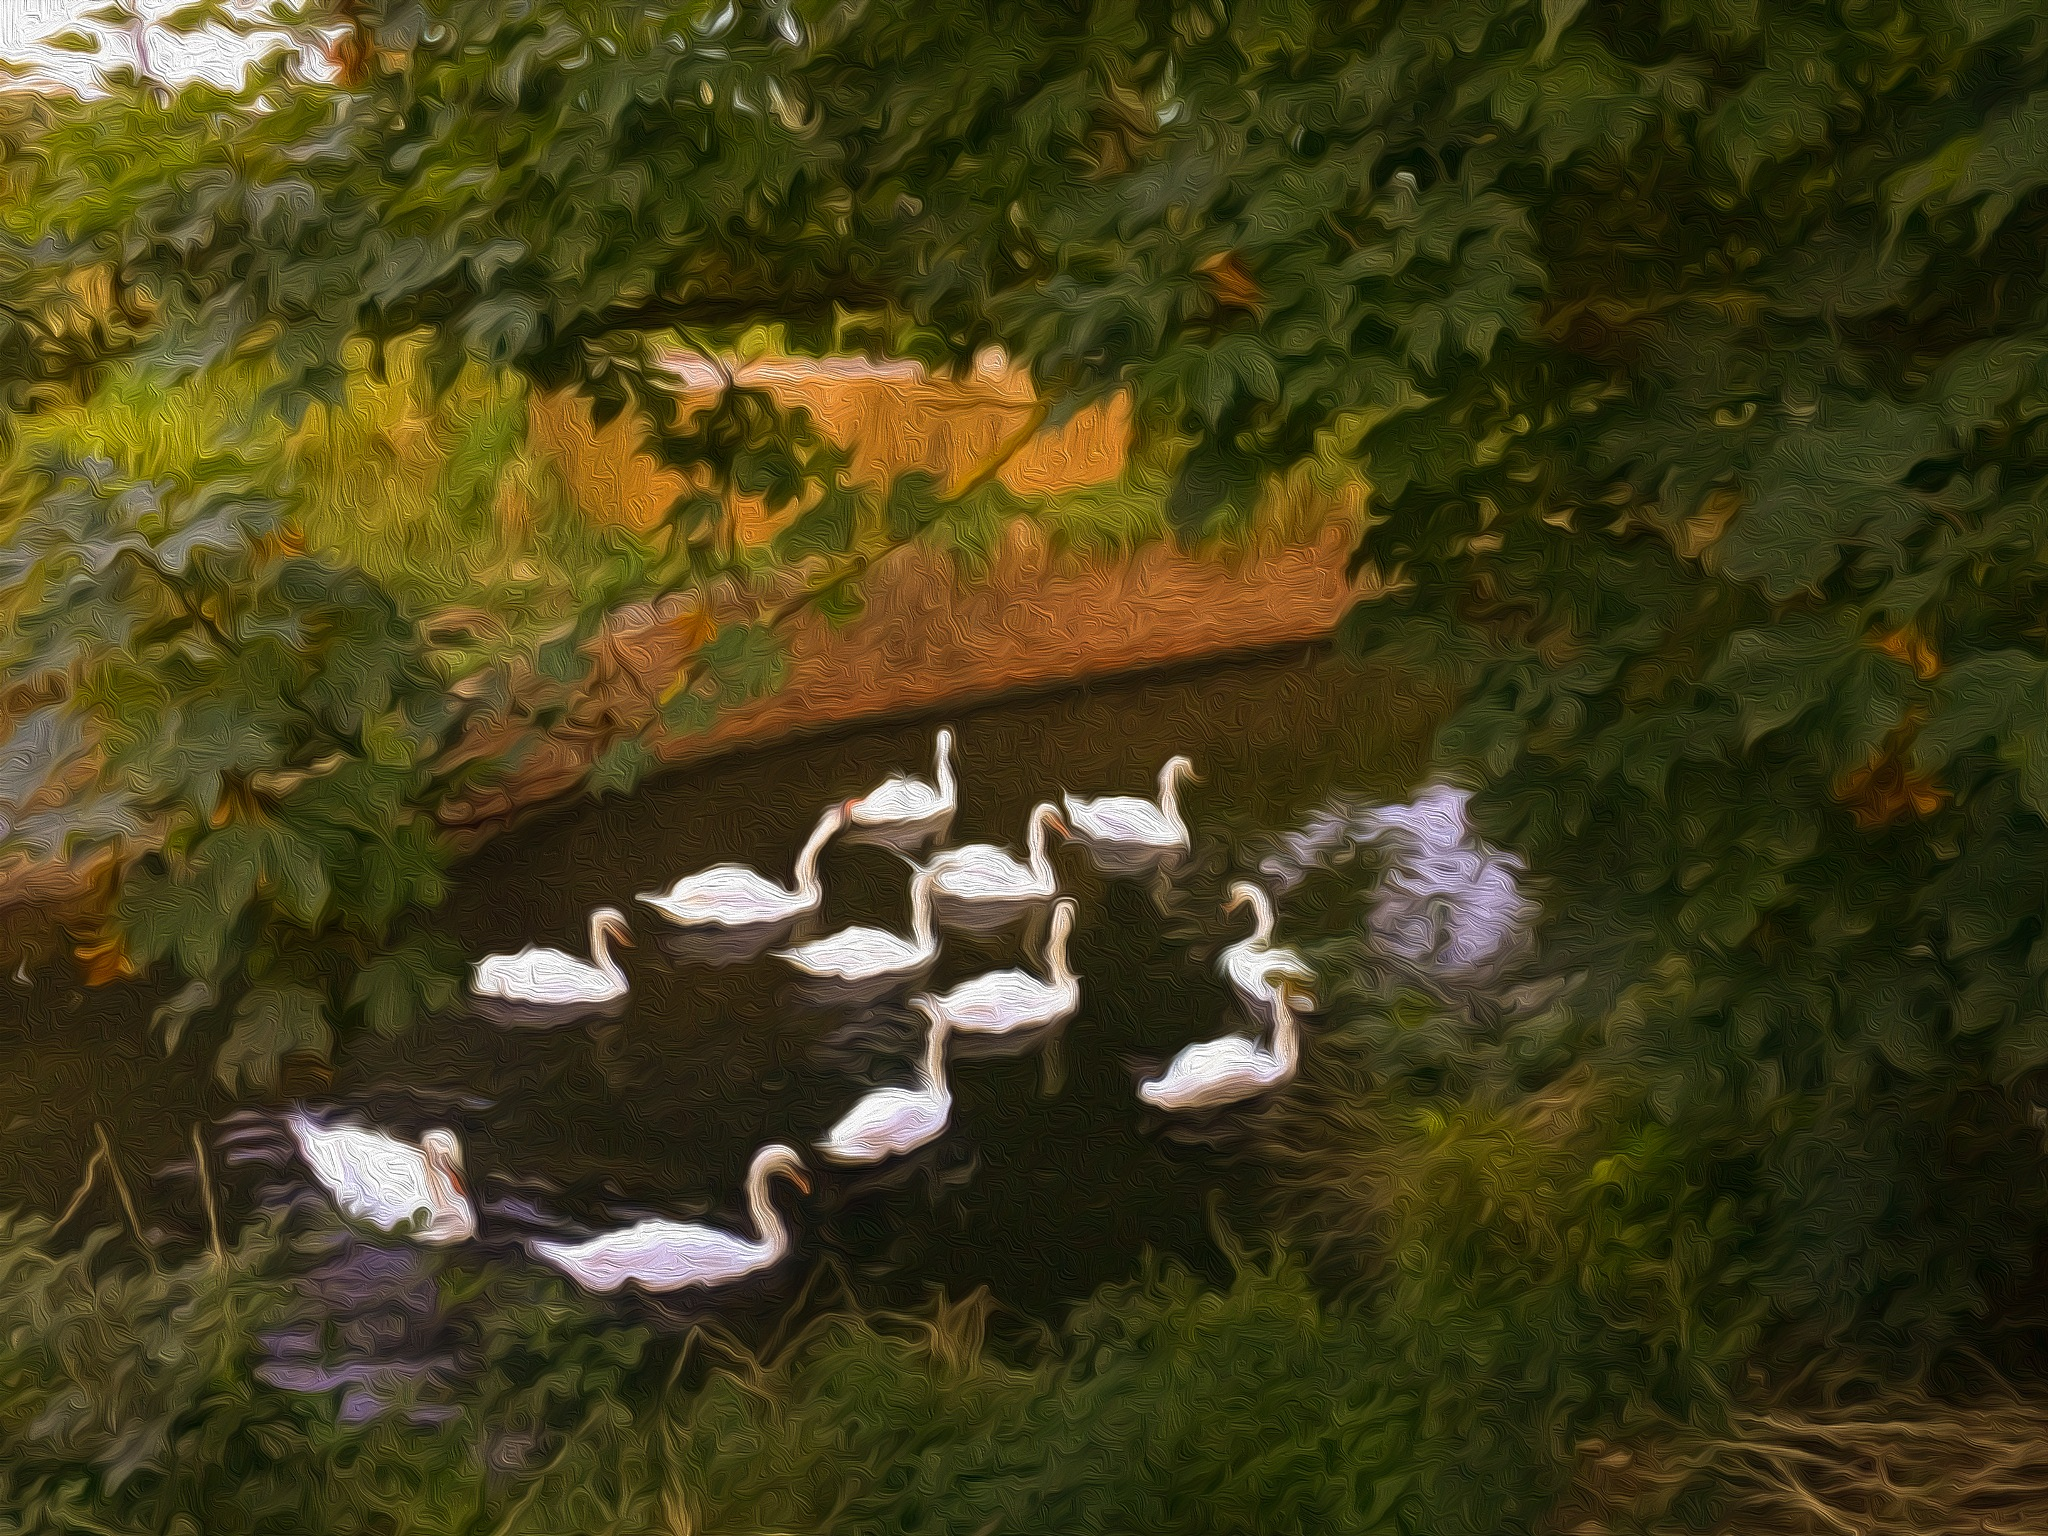 Eastbourne -Swans in a Pond 2 by onasar